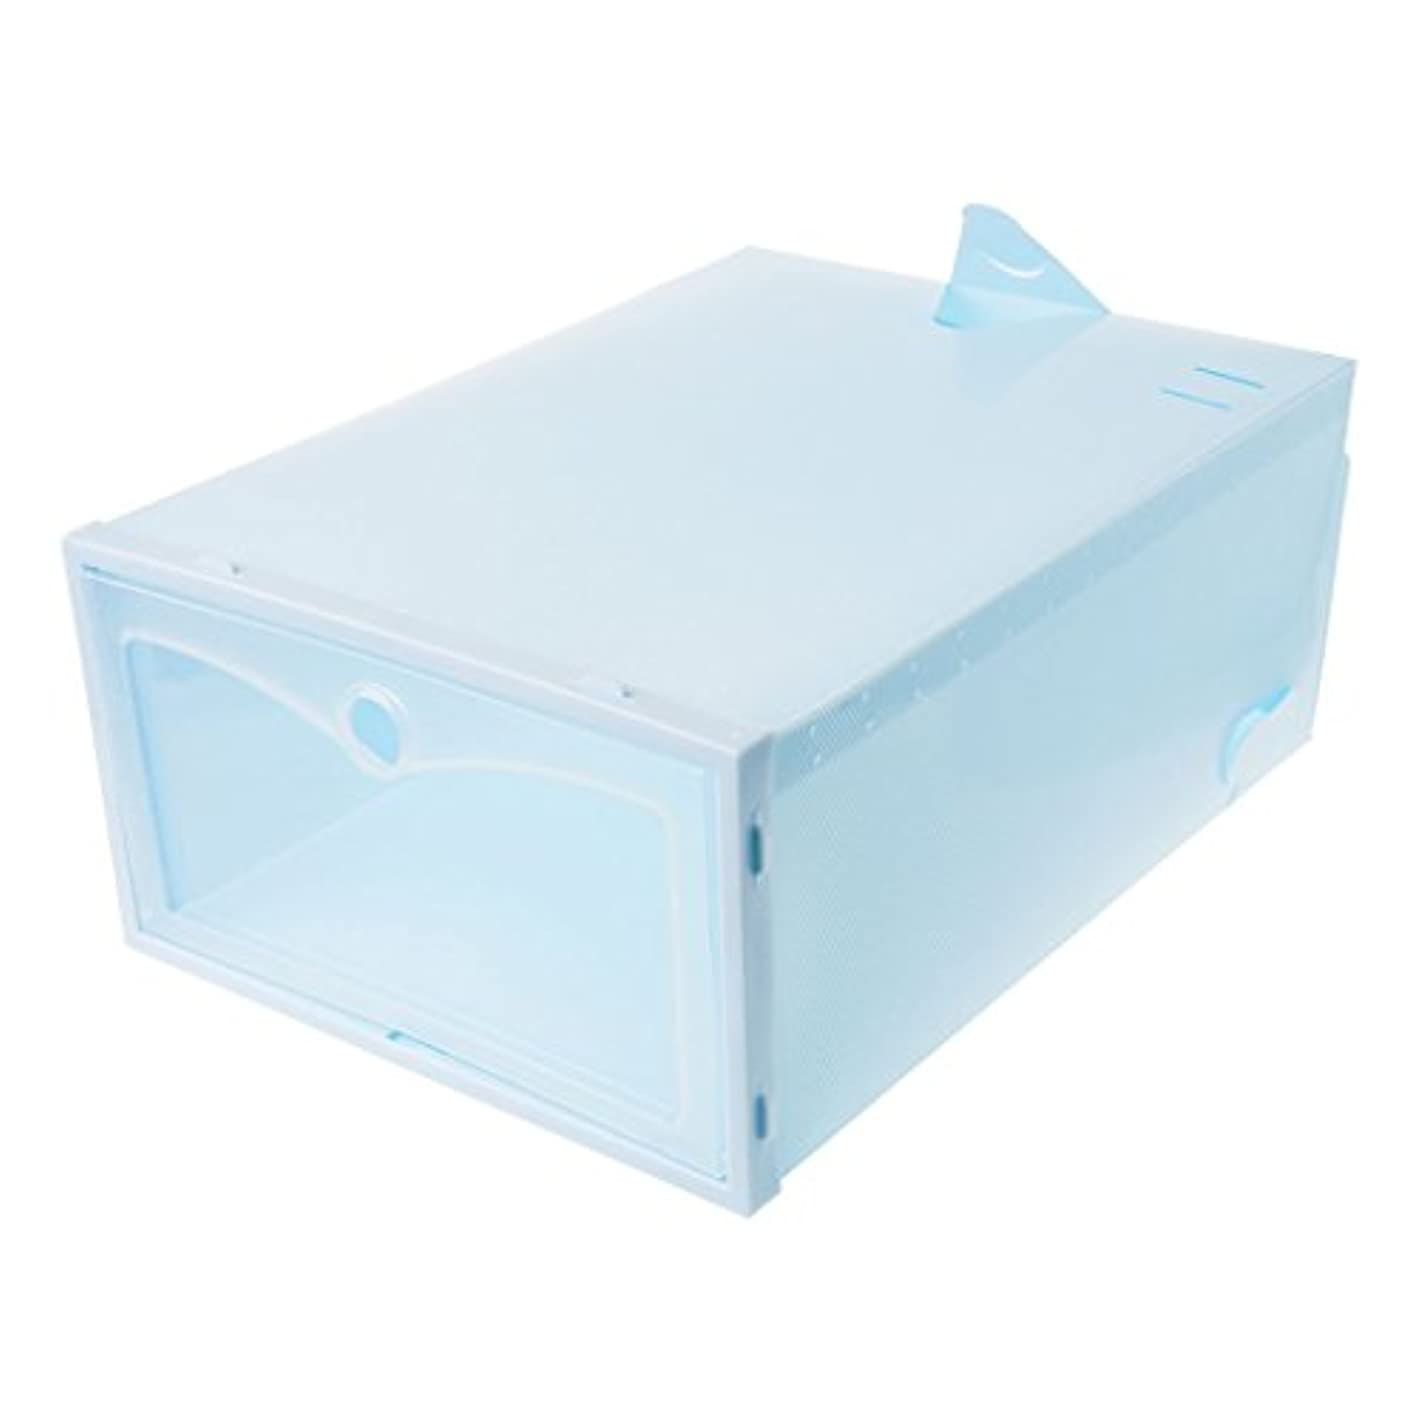 UJuly Shoe Box Clear Plastic Door Stackable Storage Case Shoes Organizer Folding Drawer Type Home Supplies Accessories (Blue)